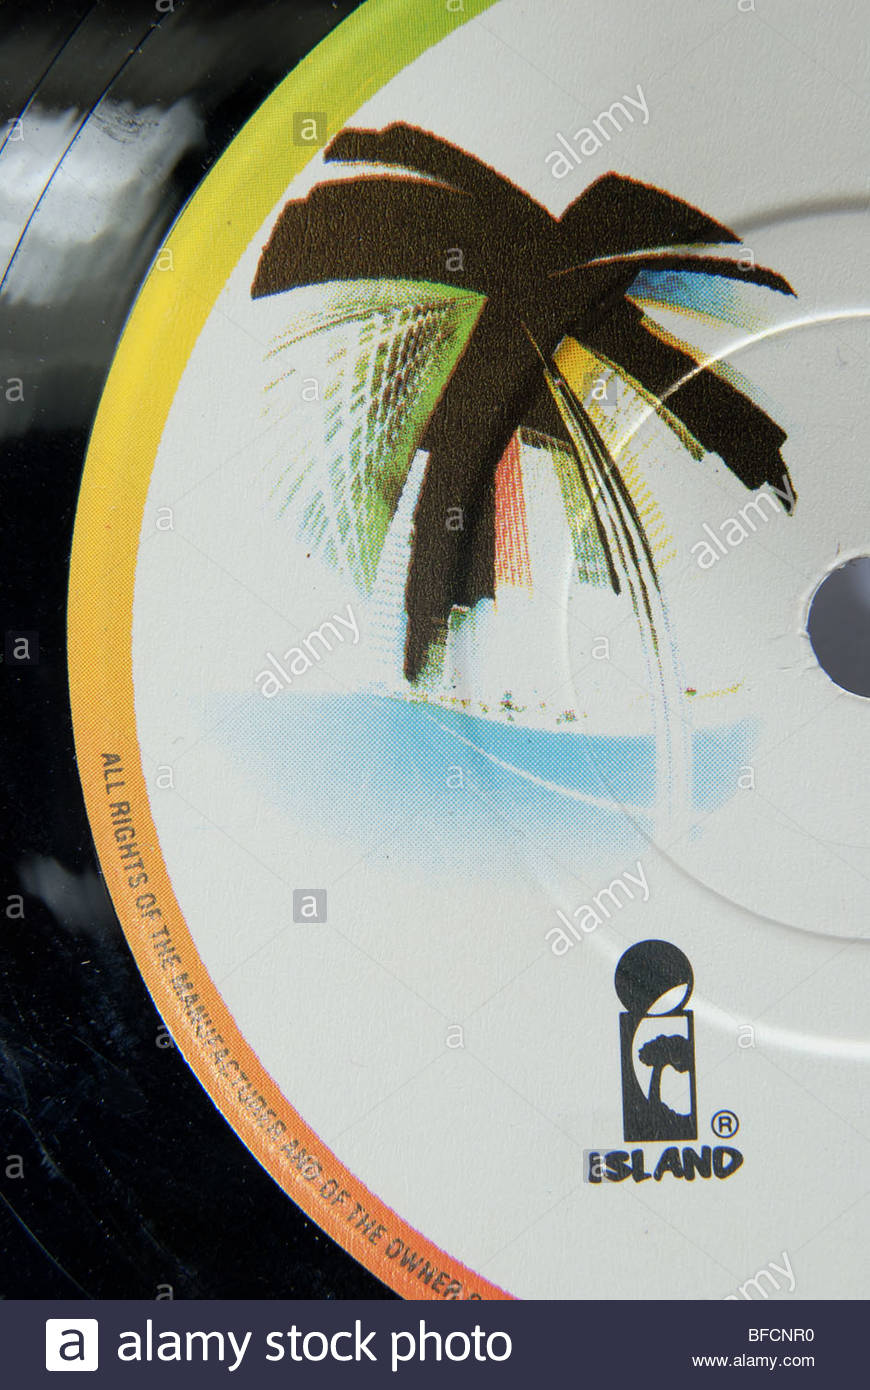 Label of an Island records 45 rpm record. - Stock Image